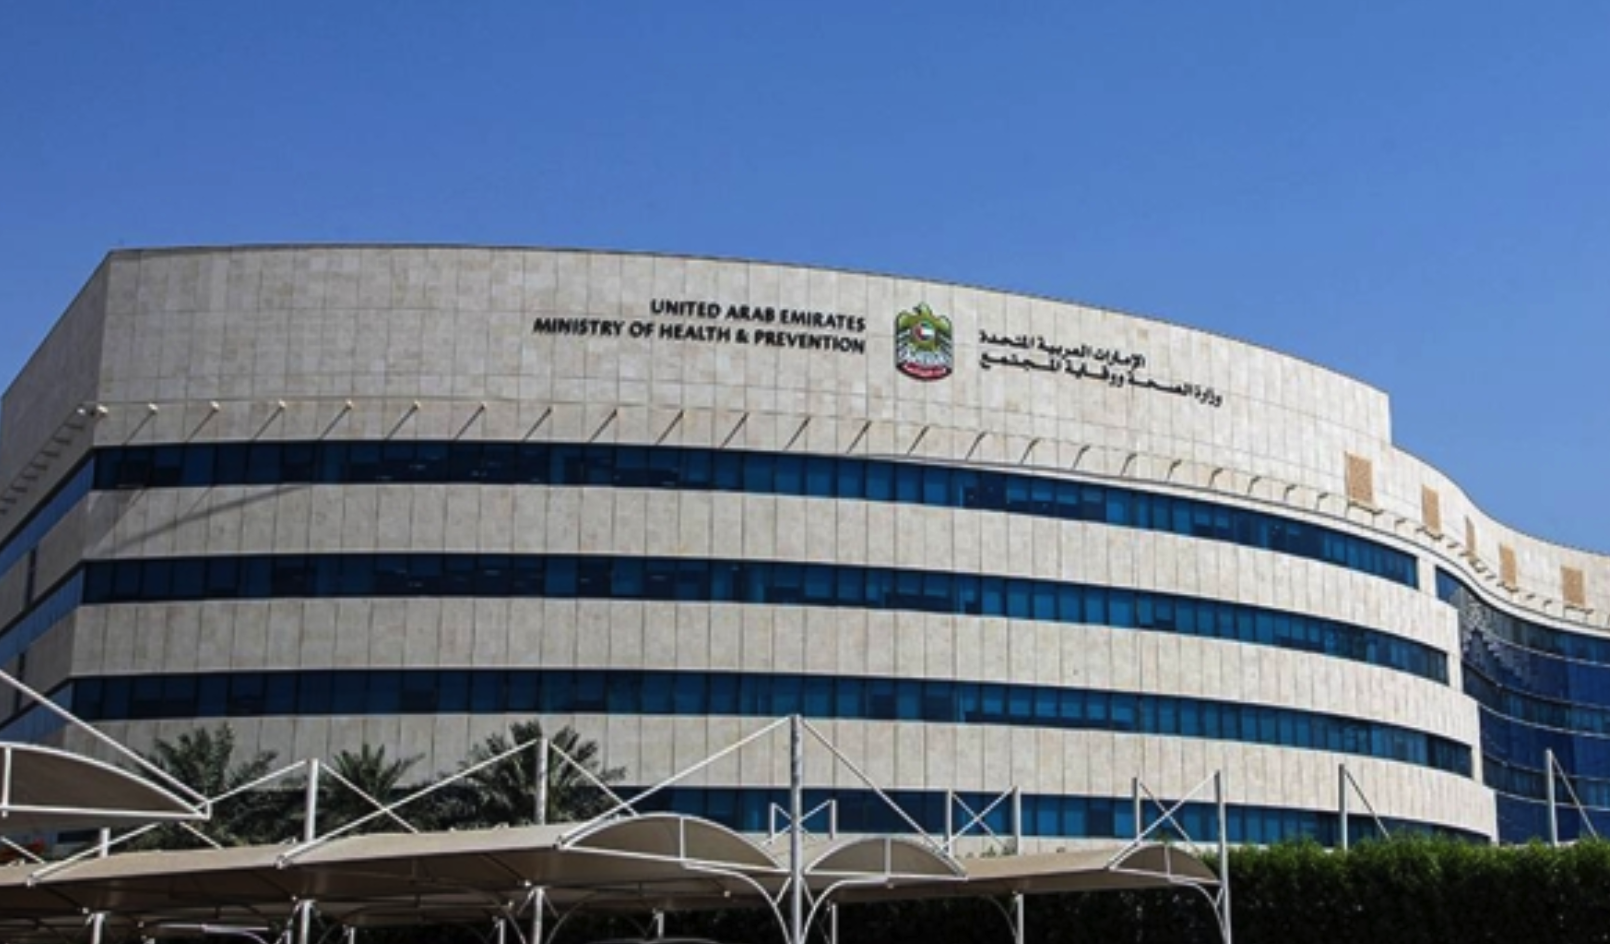 UAE: You can now get birth certificate issued via WhatsApp